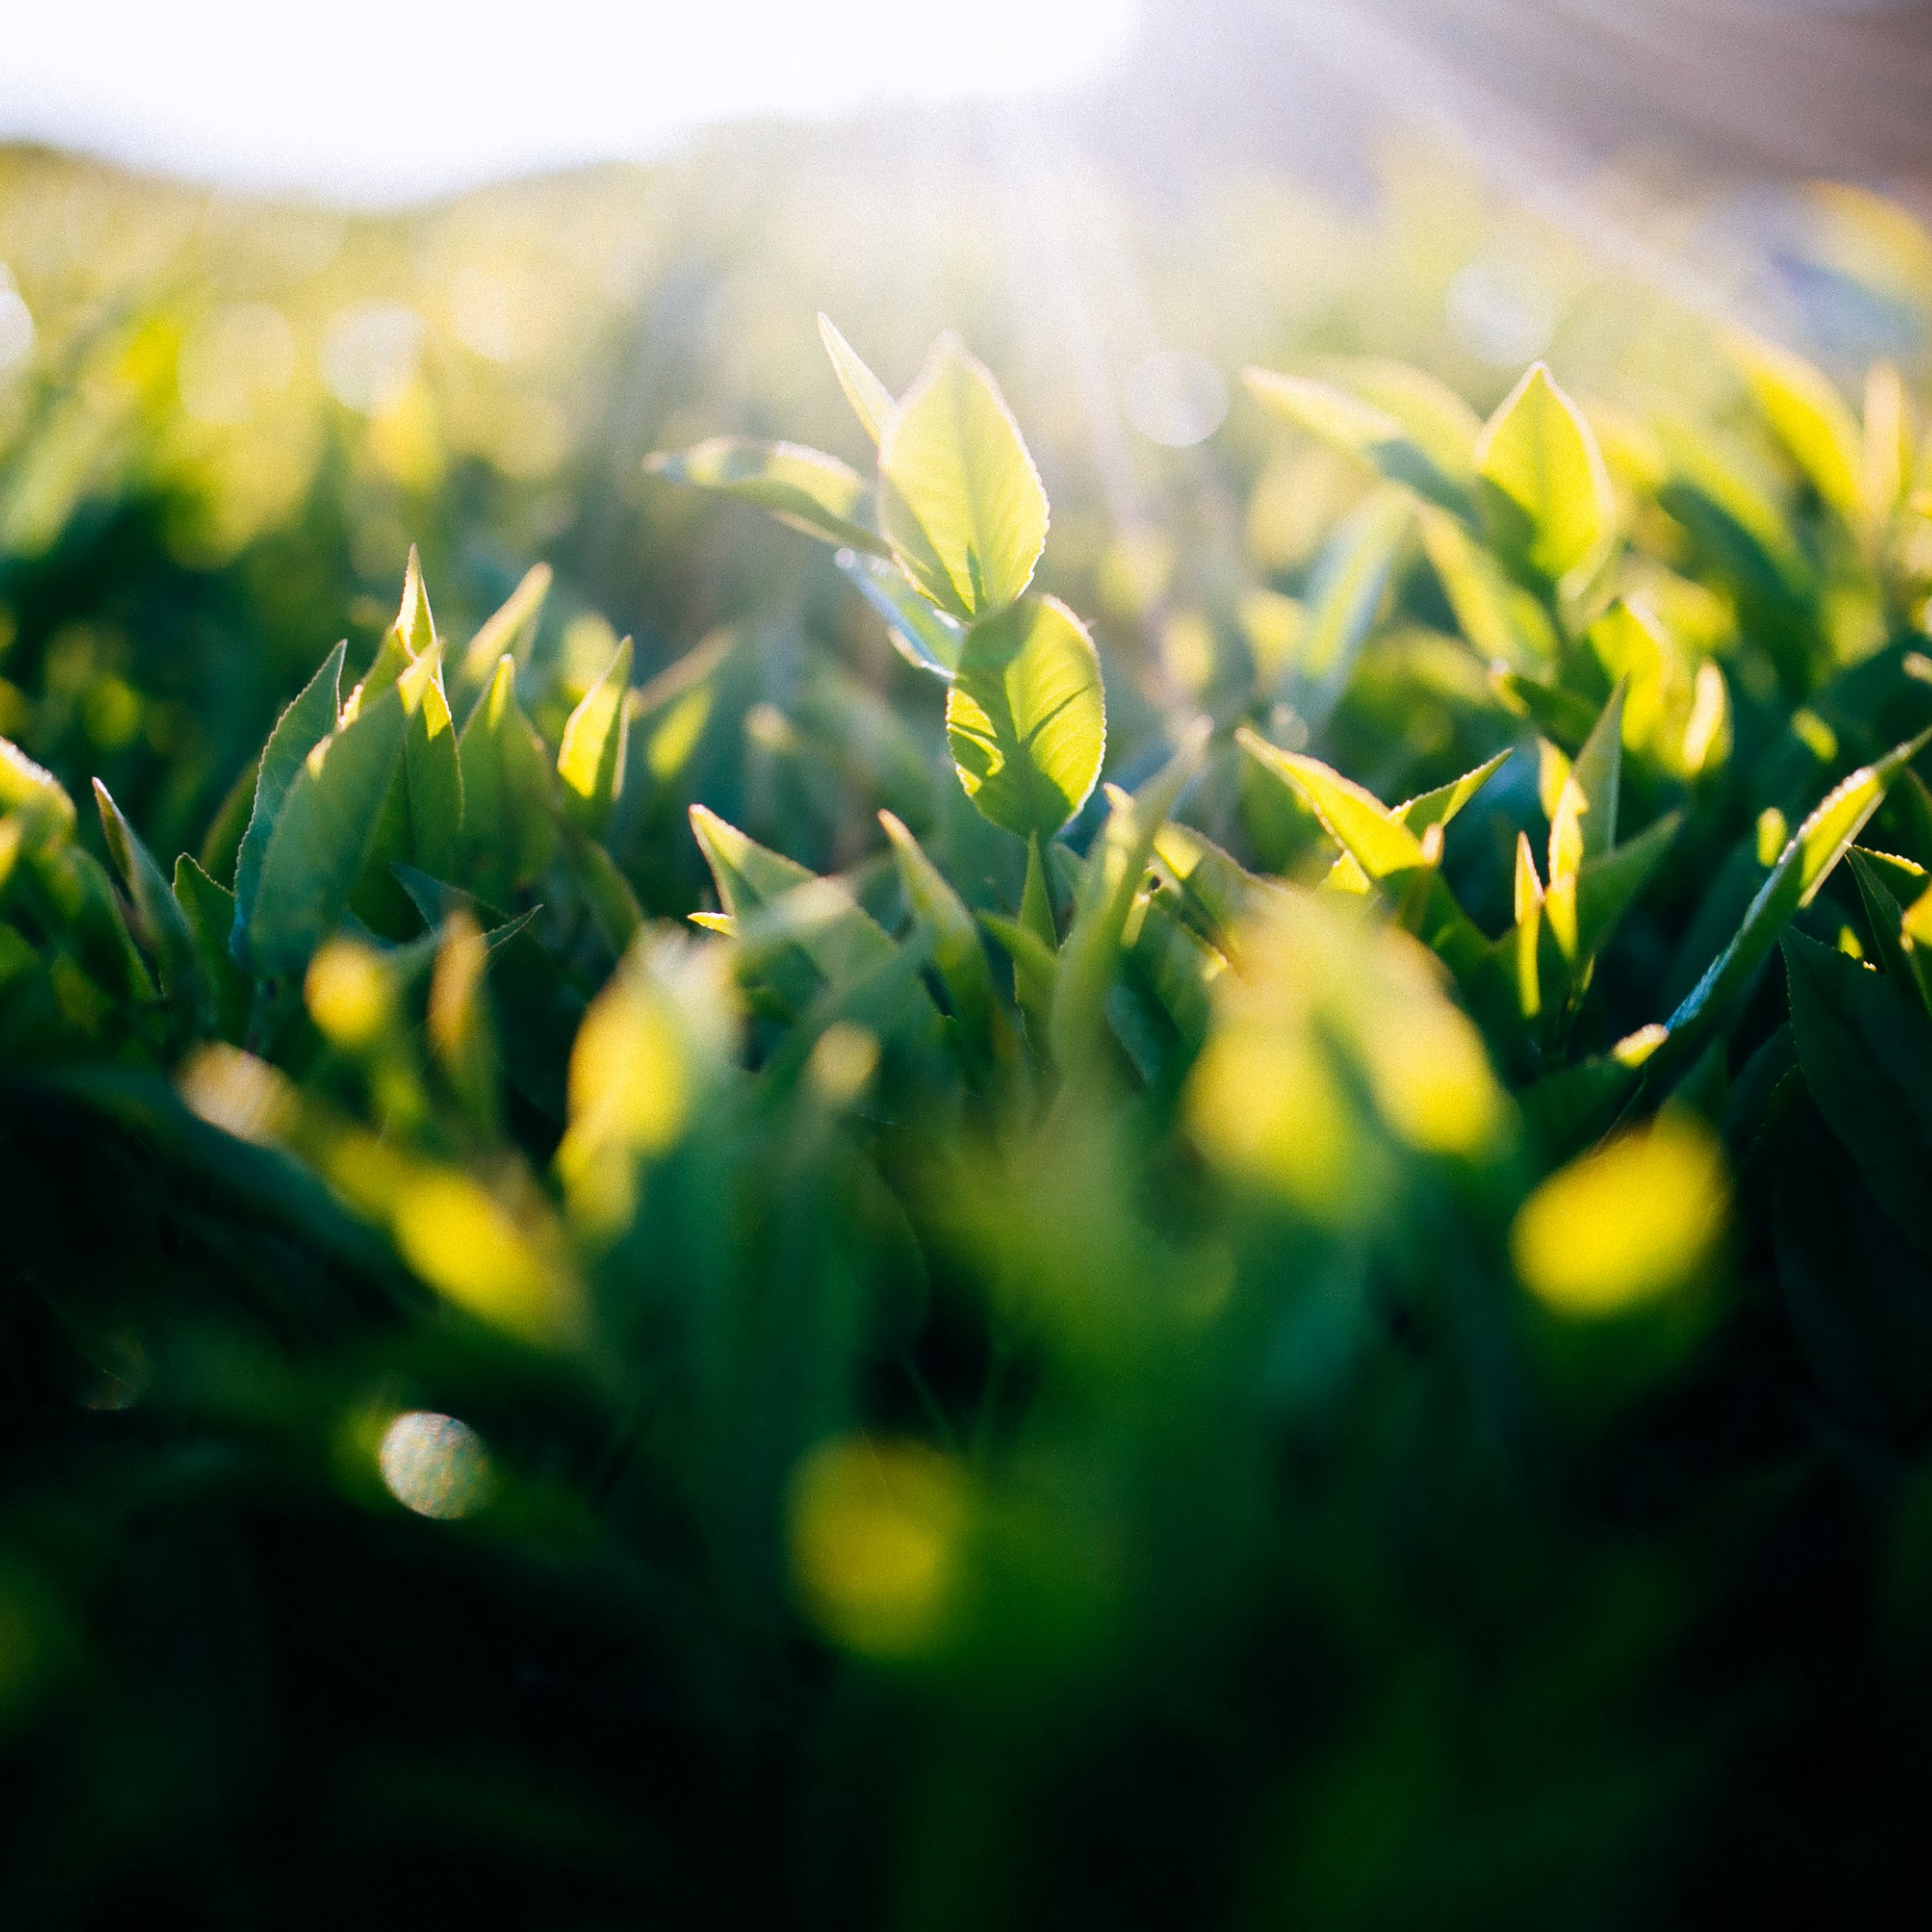 Sun light between green leaves | 2224x2224 wallpaper